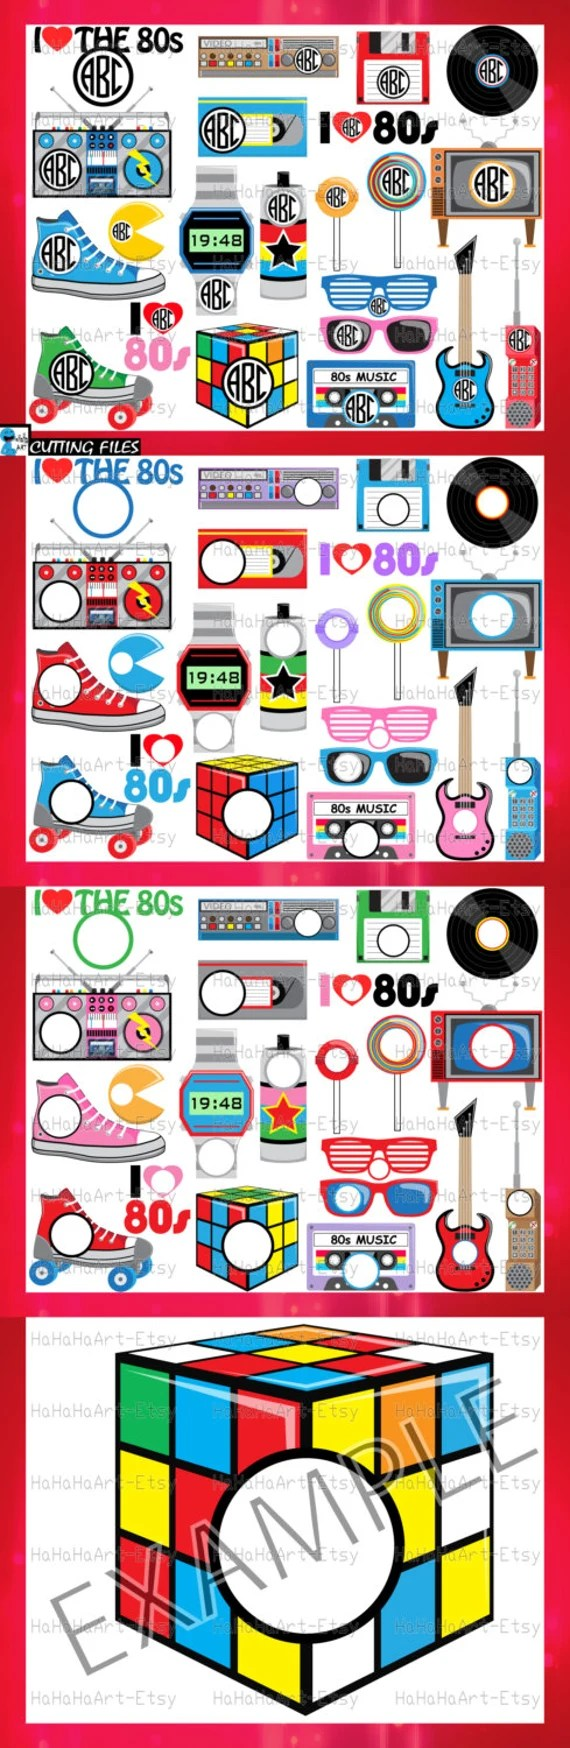 Download Circle 1980s I Love The 80s v2 Cutting Files Svg Png Jpg